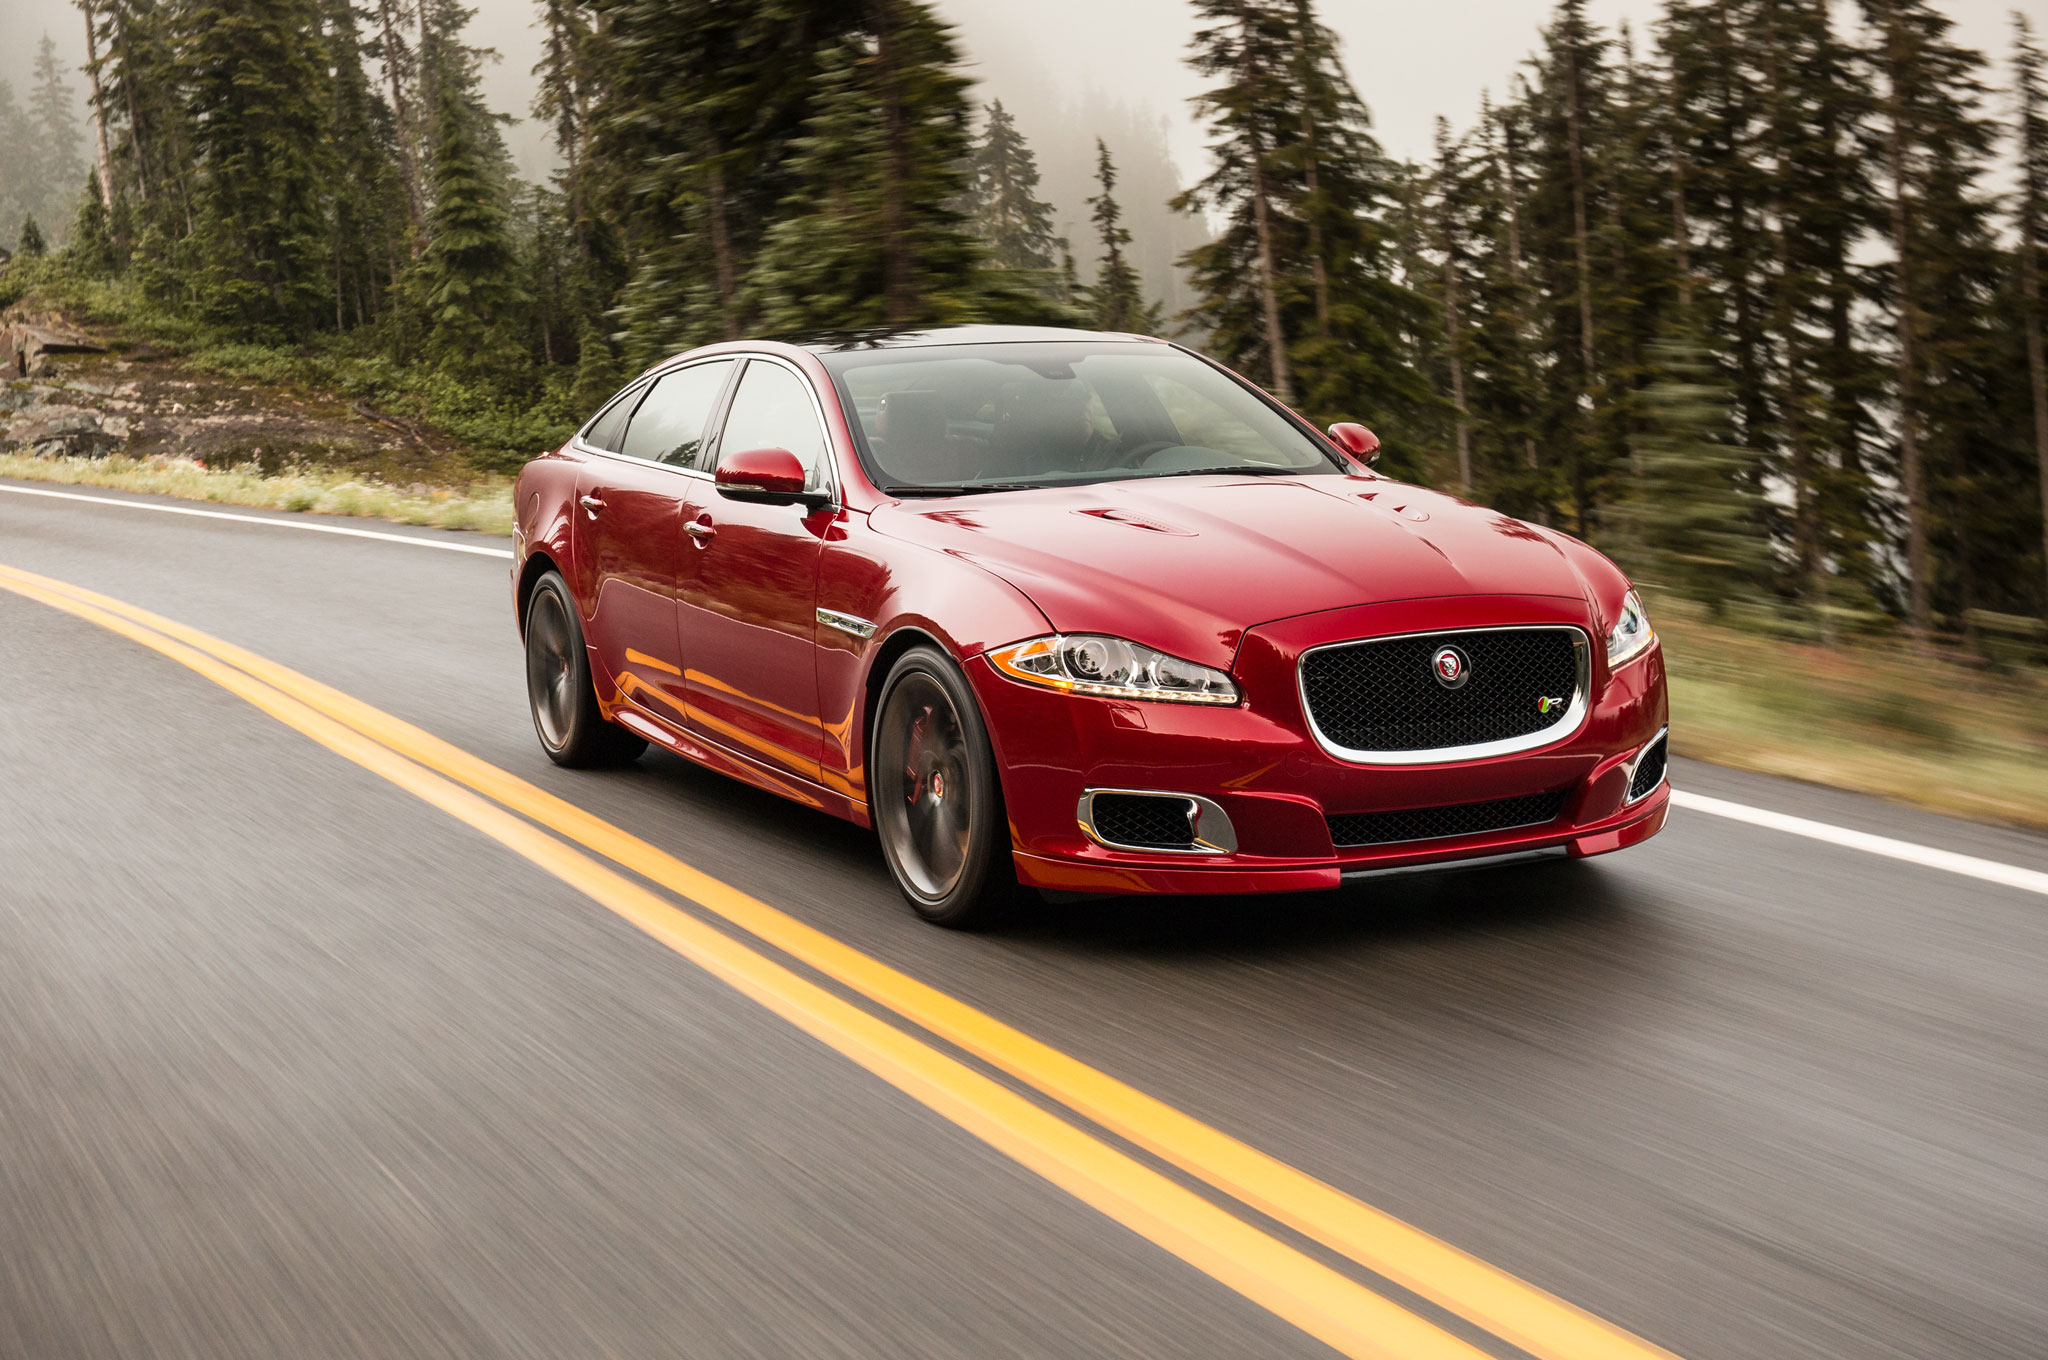 2014 jaguar xjr long wheelbase quick drive [ 2048 x 1360 Pixel ]